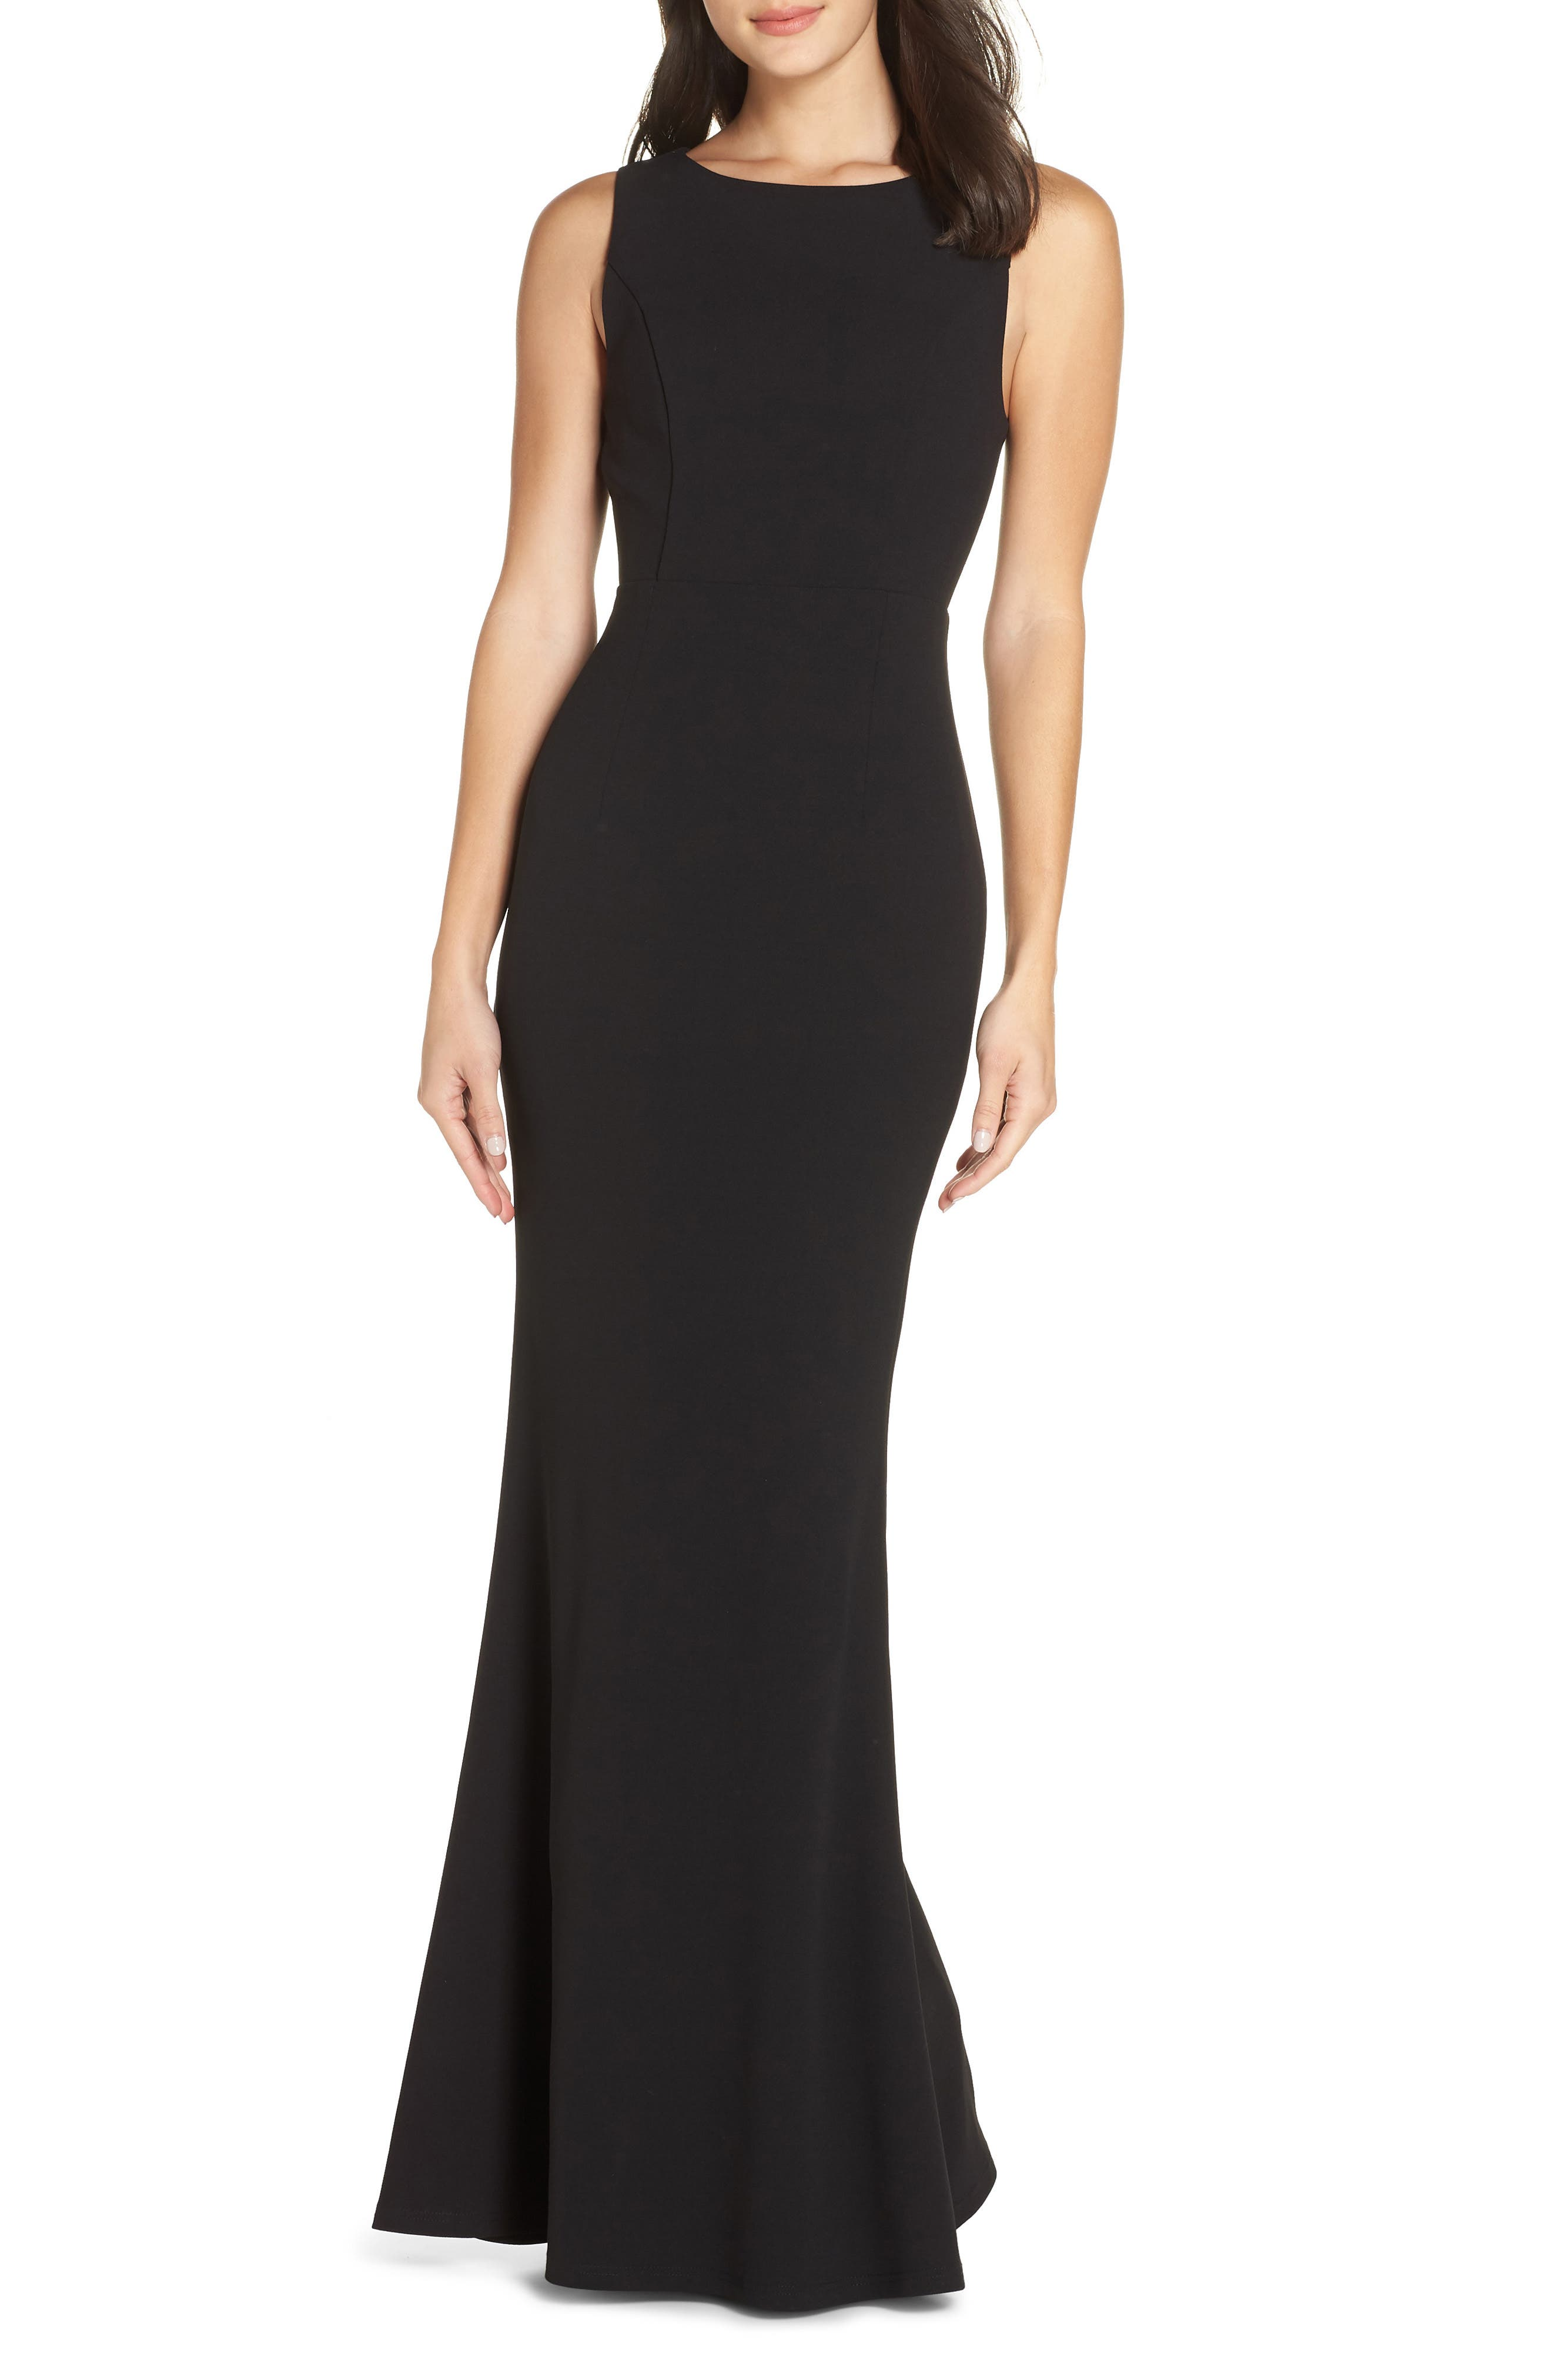 LULUS, Mine Backless Trumpet Gown, Main thumbnail 1, color, BLACK